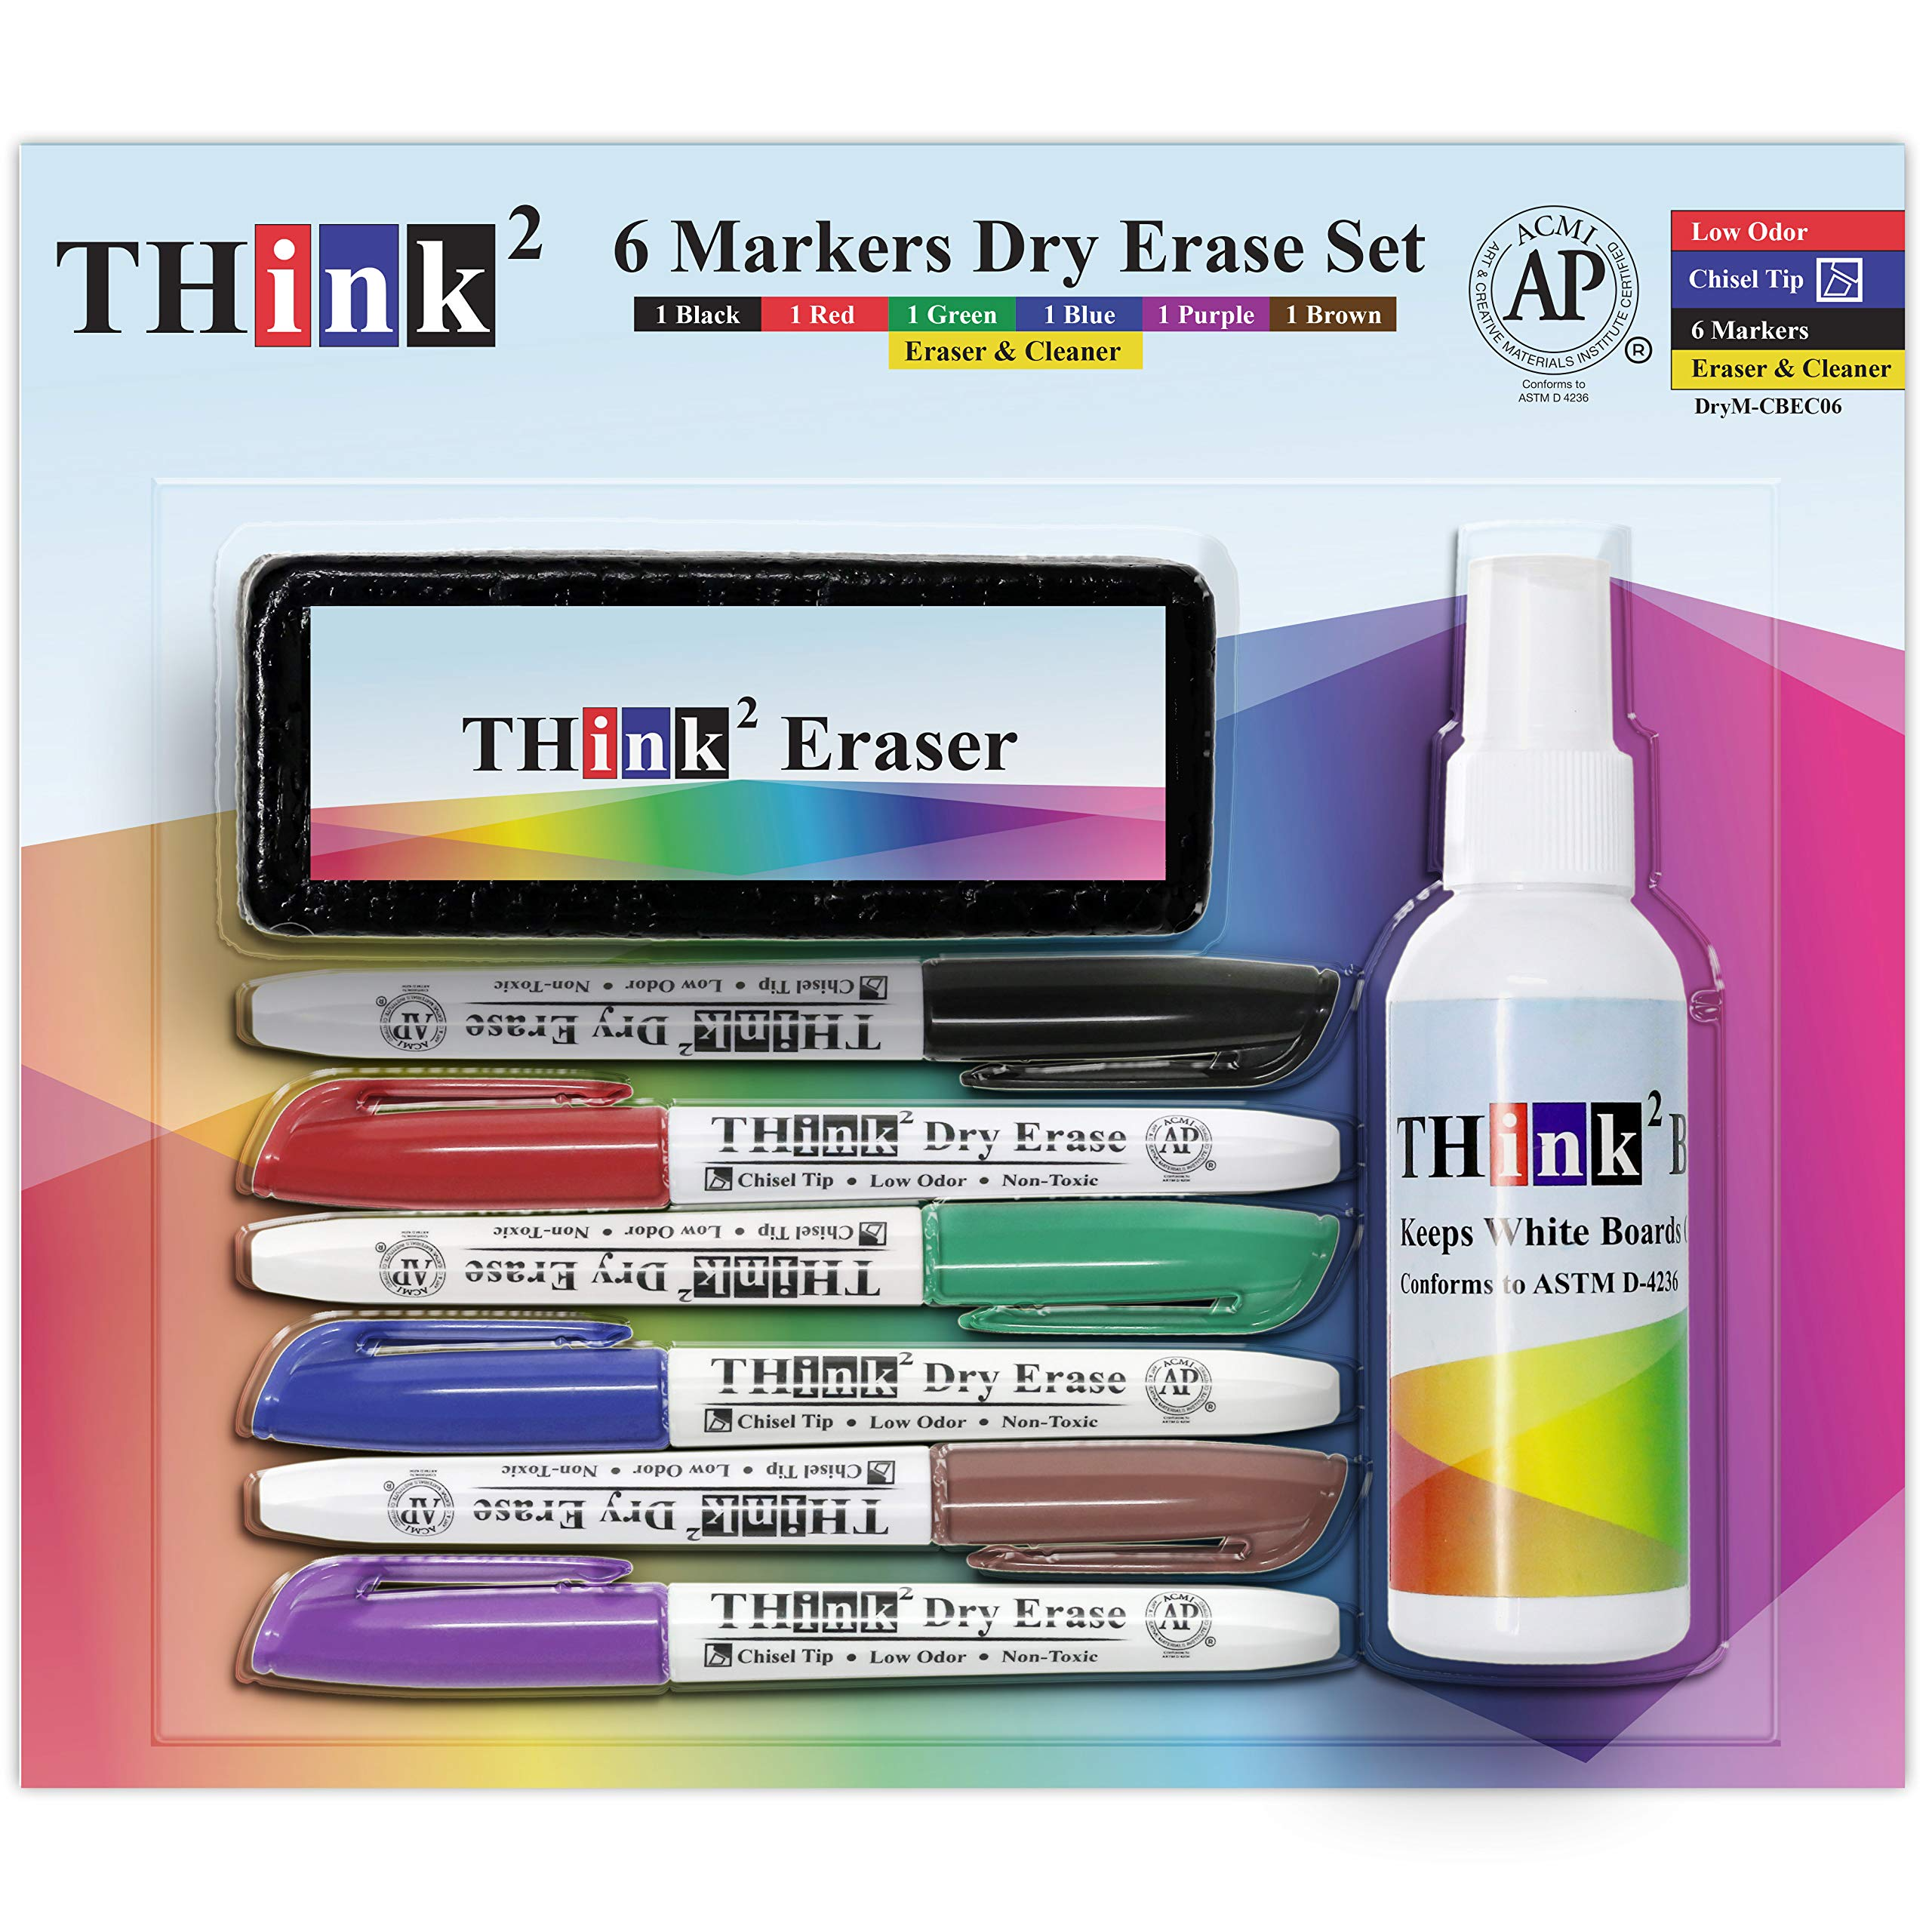 [6 Color Dry Erase Markers] Think2 Chisel Tip Markers with Eraser & Cleaner Set. (1 Black, 1 Red, 1 Blue, 1 Green, 1 Purple, 1 Brown) AP Certified German Ink. For Kids, Classroom, Office, Home